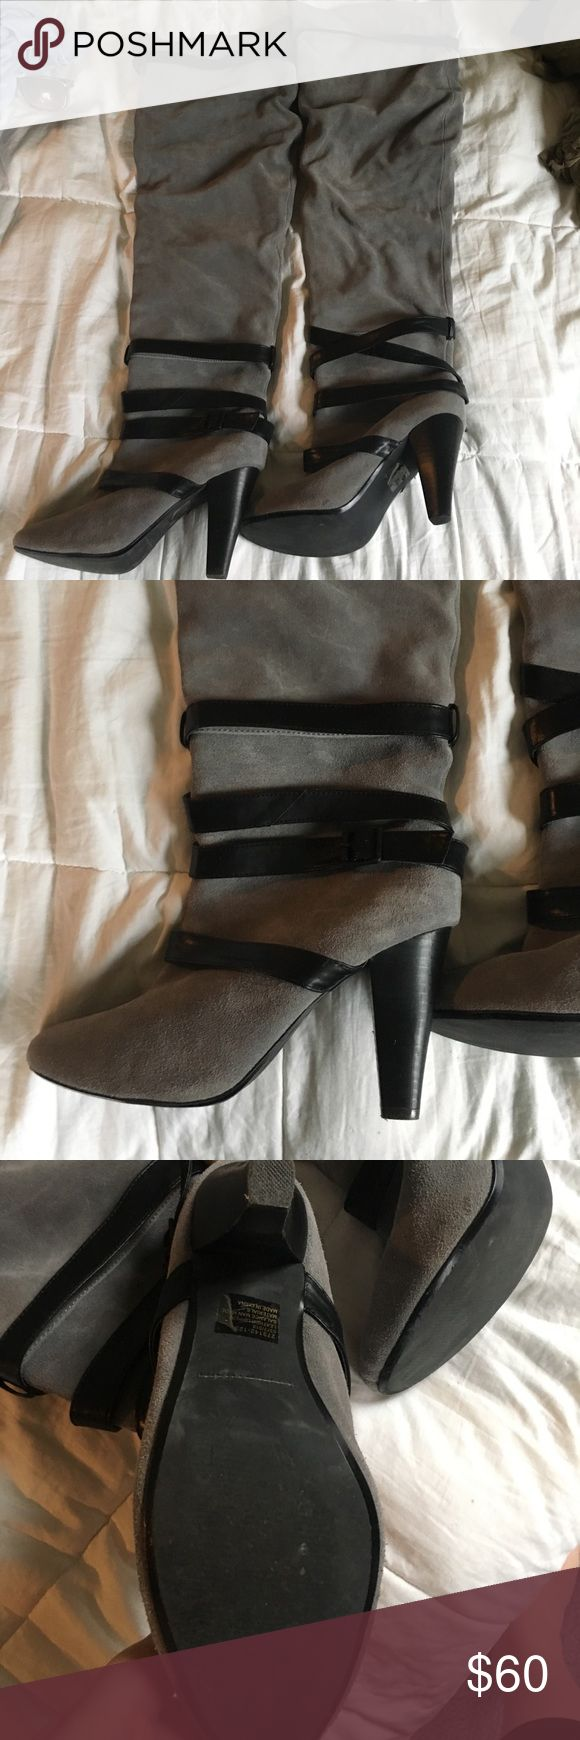 Colin Stuart knee high suede boots Colin Stuart knee high suede boots. Gray suede with black leather straps at bottom and top. Slouchy fit. Only worn a few times! Heels about 3 inches. Make an offer 😊 bundle & save 🤗 Colin Stuart Shoes Heeled Boots